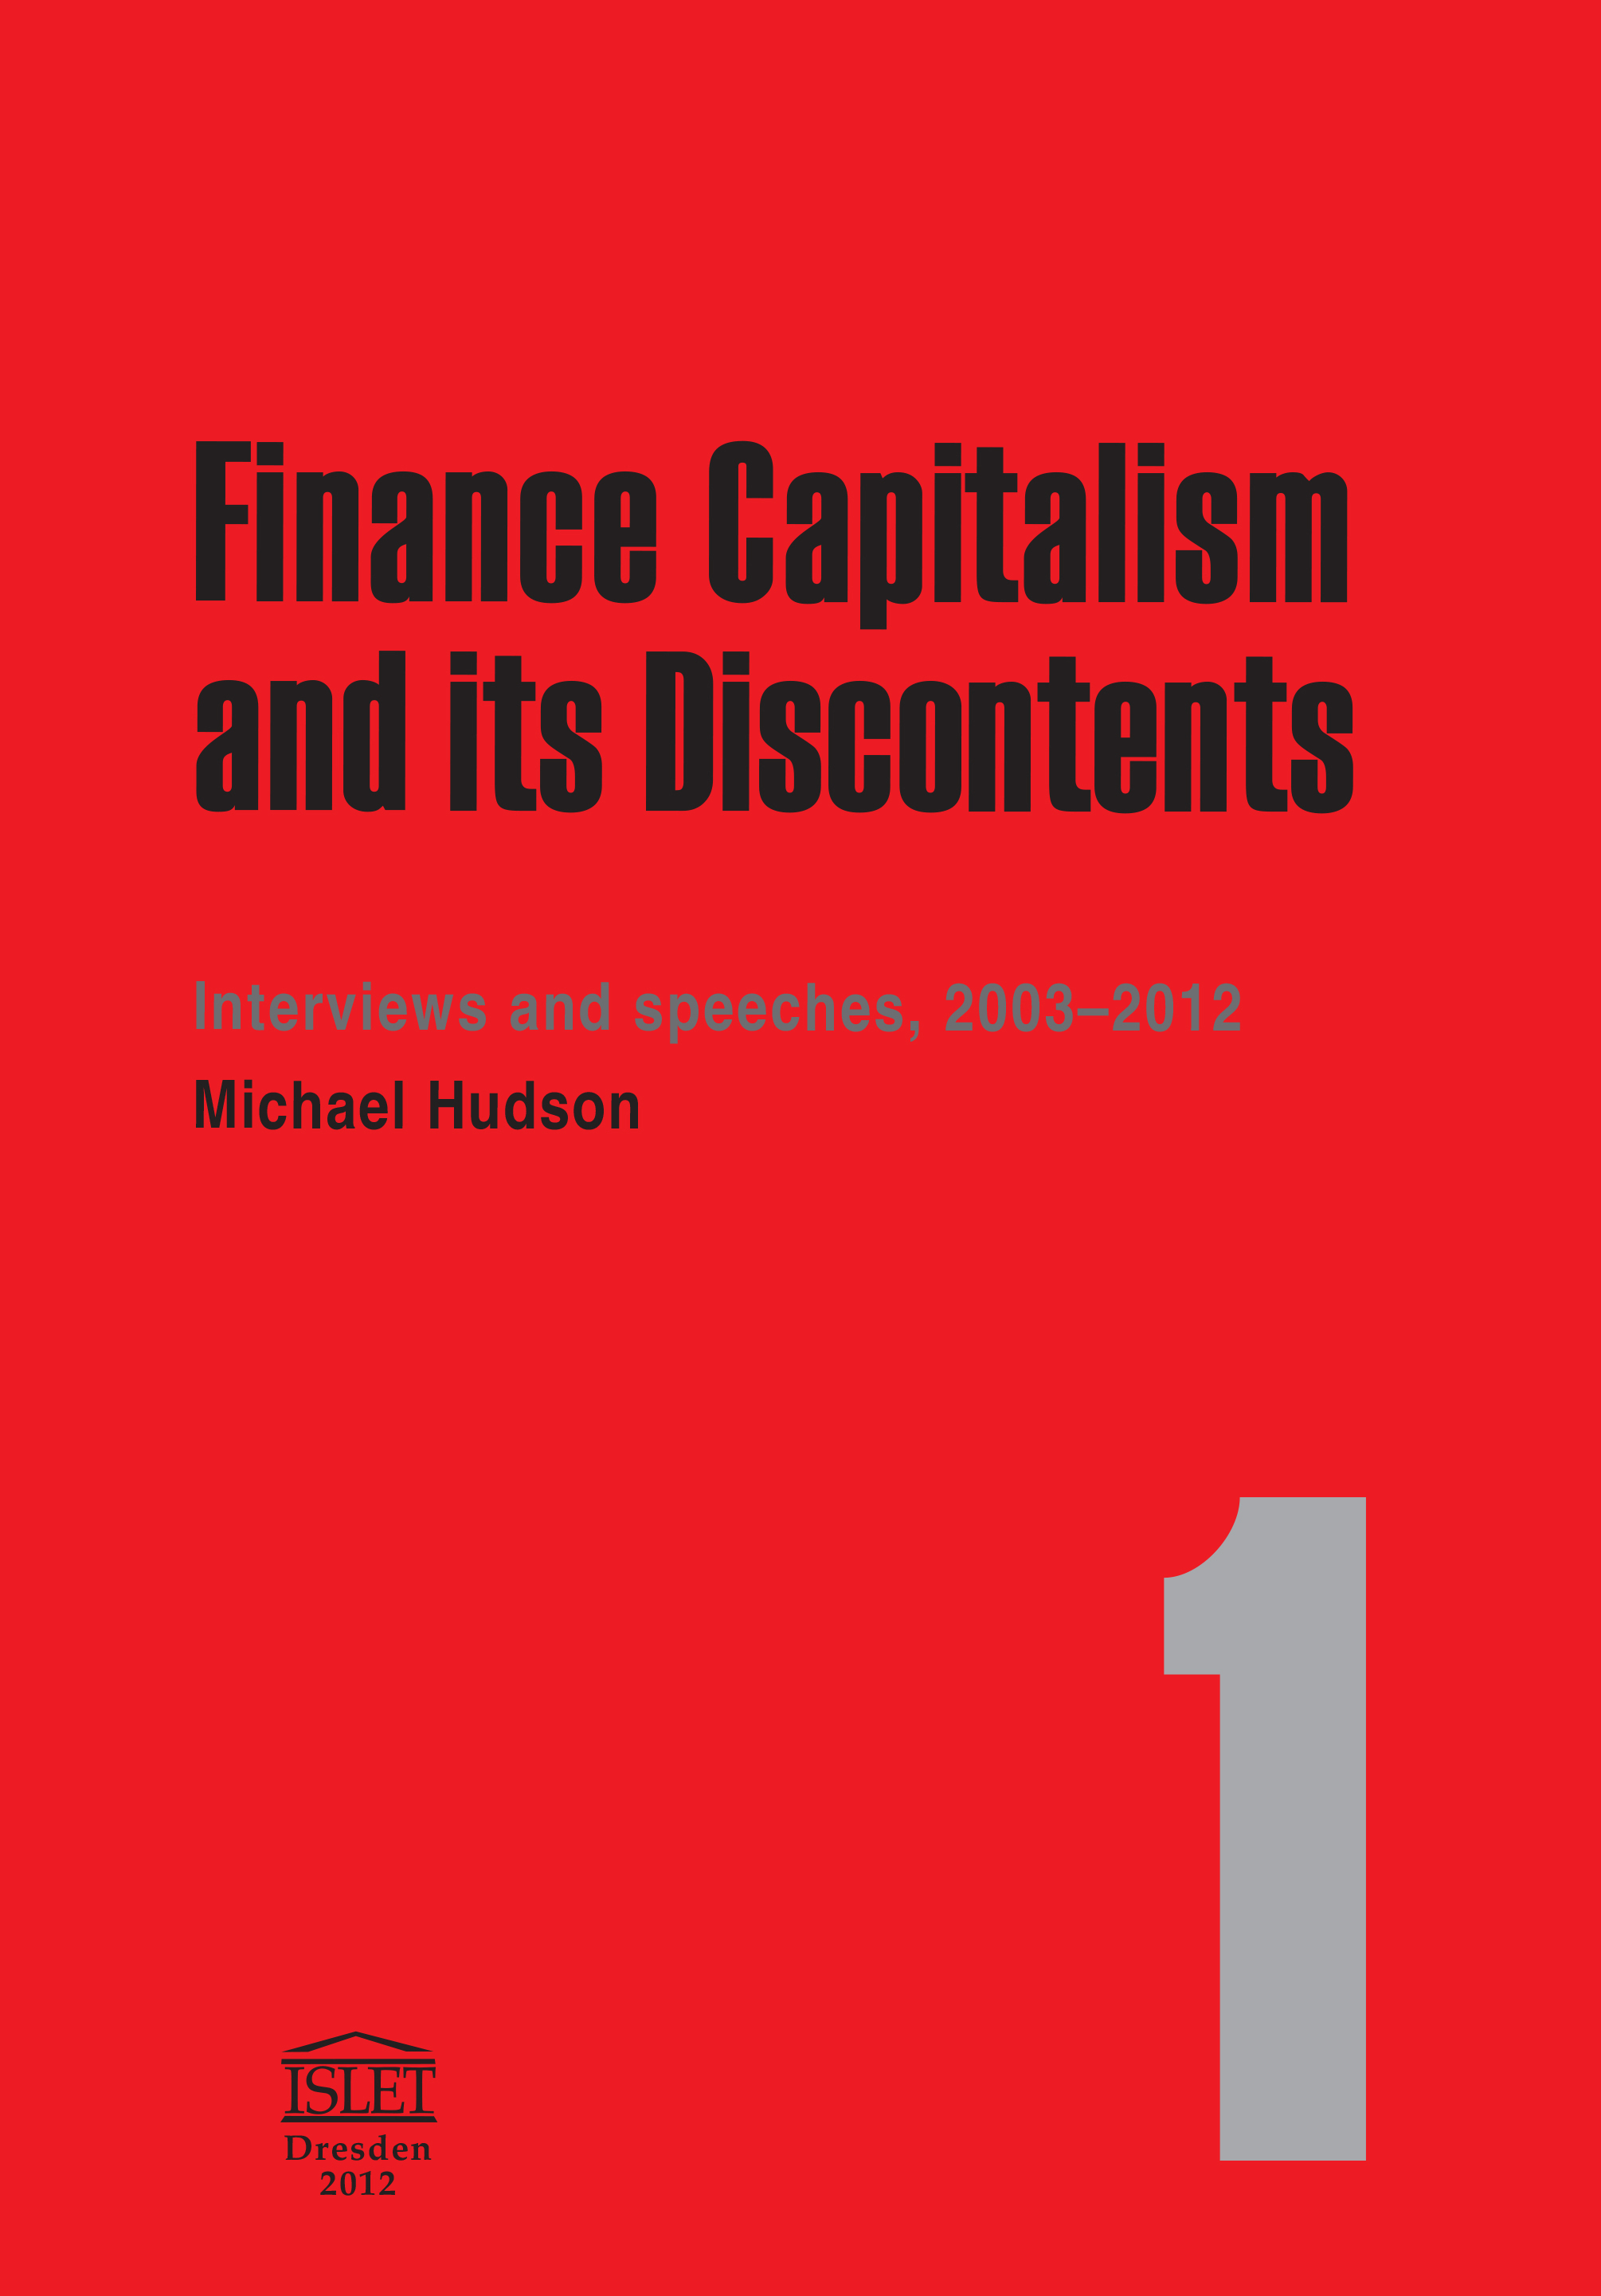 Finance Capitalism & Its Discontents on Kindle